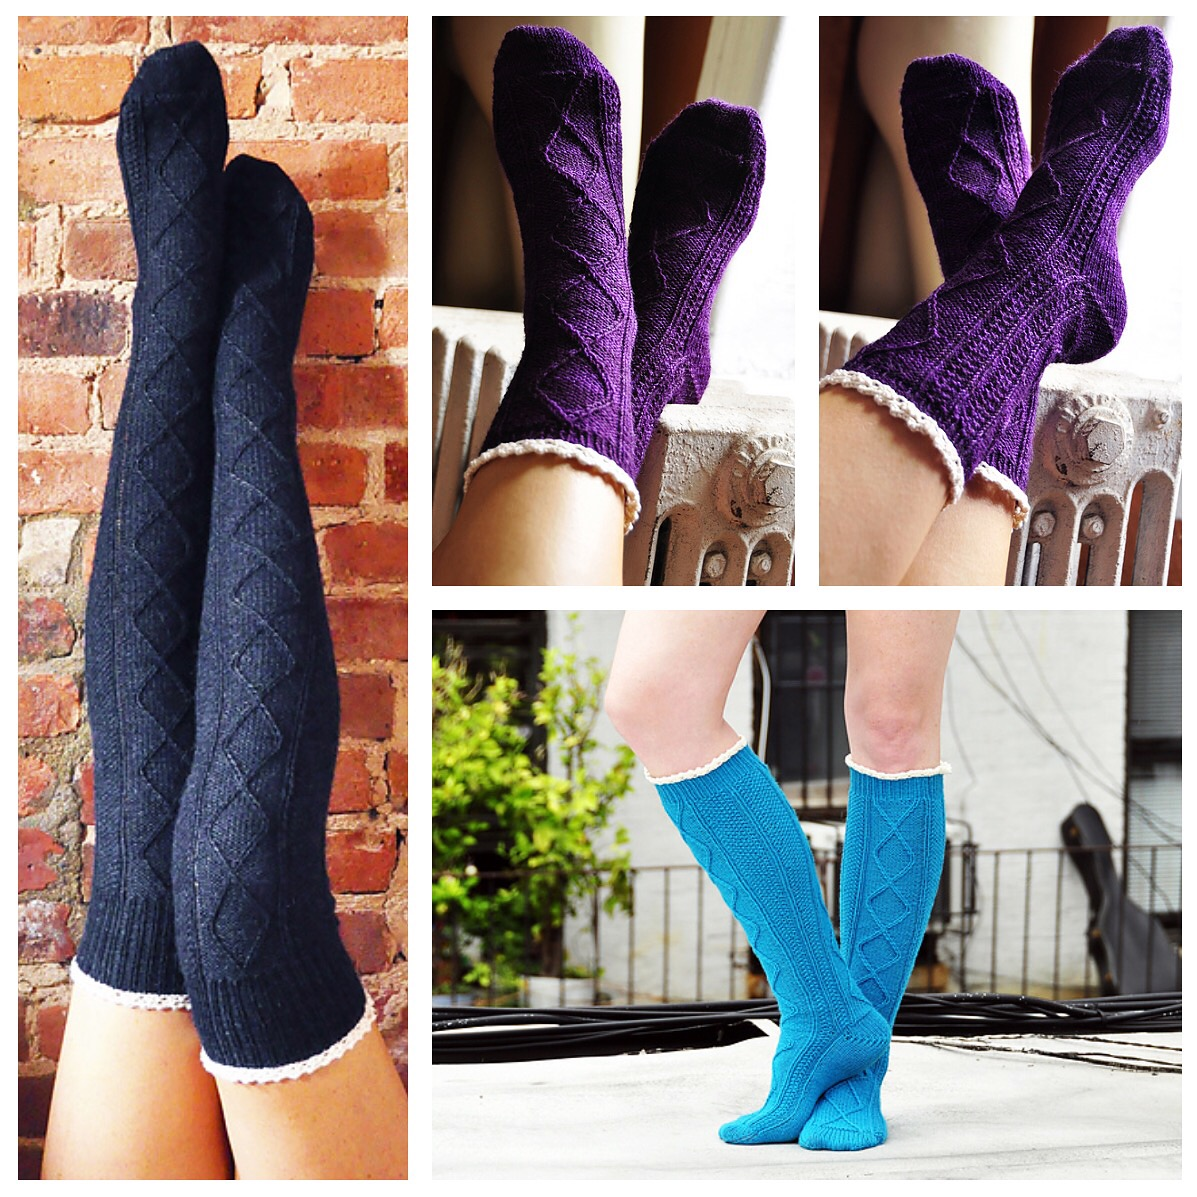 3a229866e diamond in the ruffle cable knit over the knee socks knitting pattern  collage